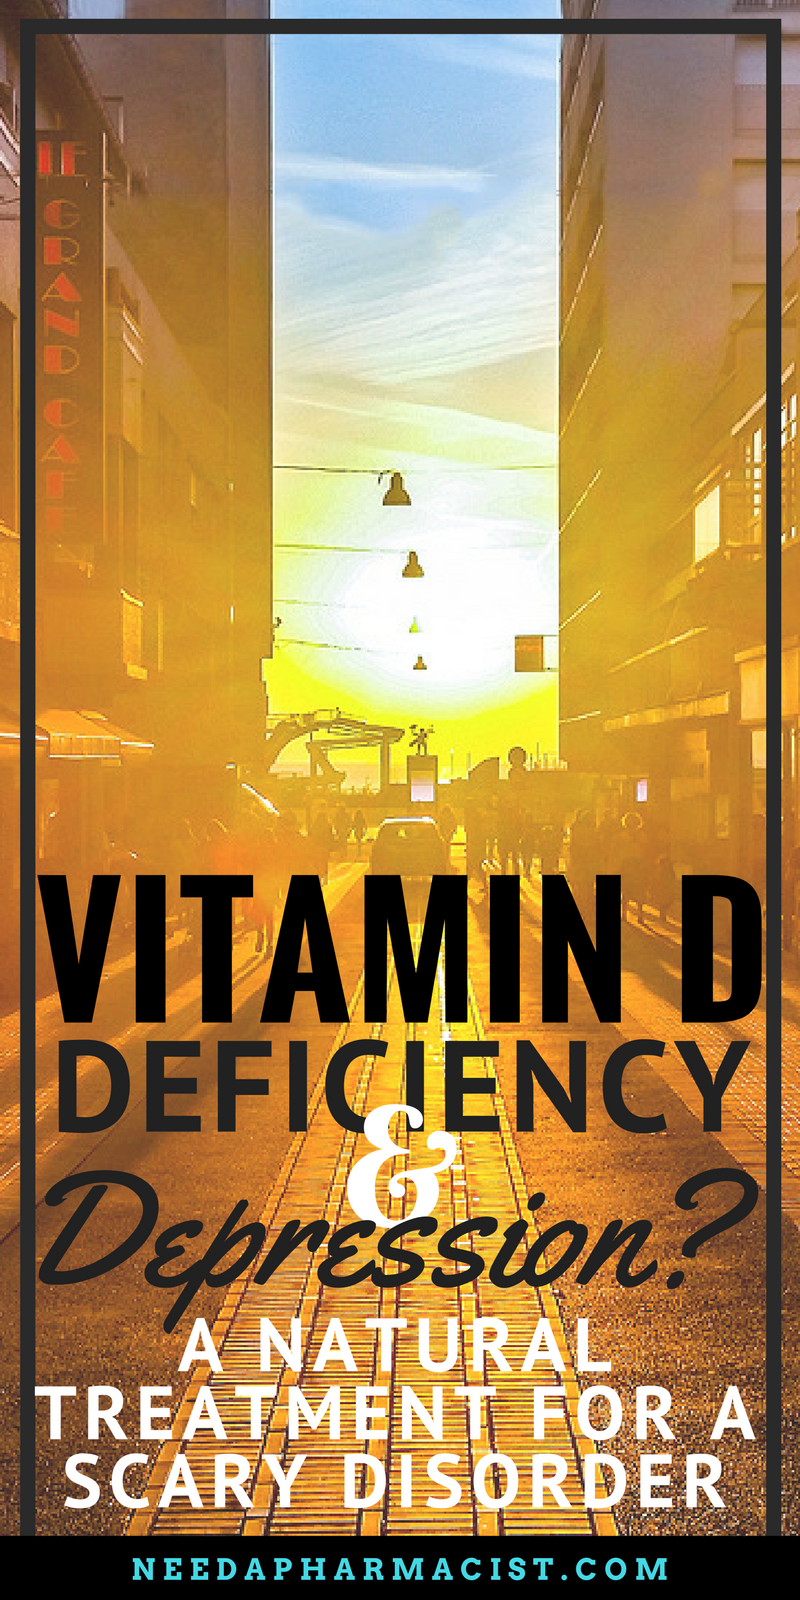 Could low Vitamin D levels be contributing to your depression? Read more about how this Vitamin can help to treat depression, naturally!